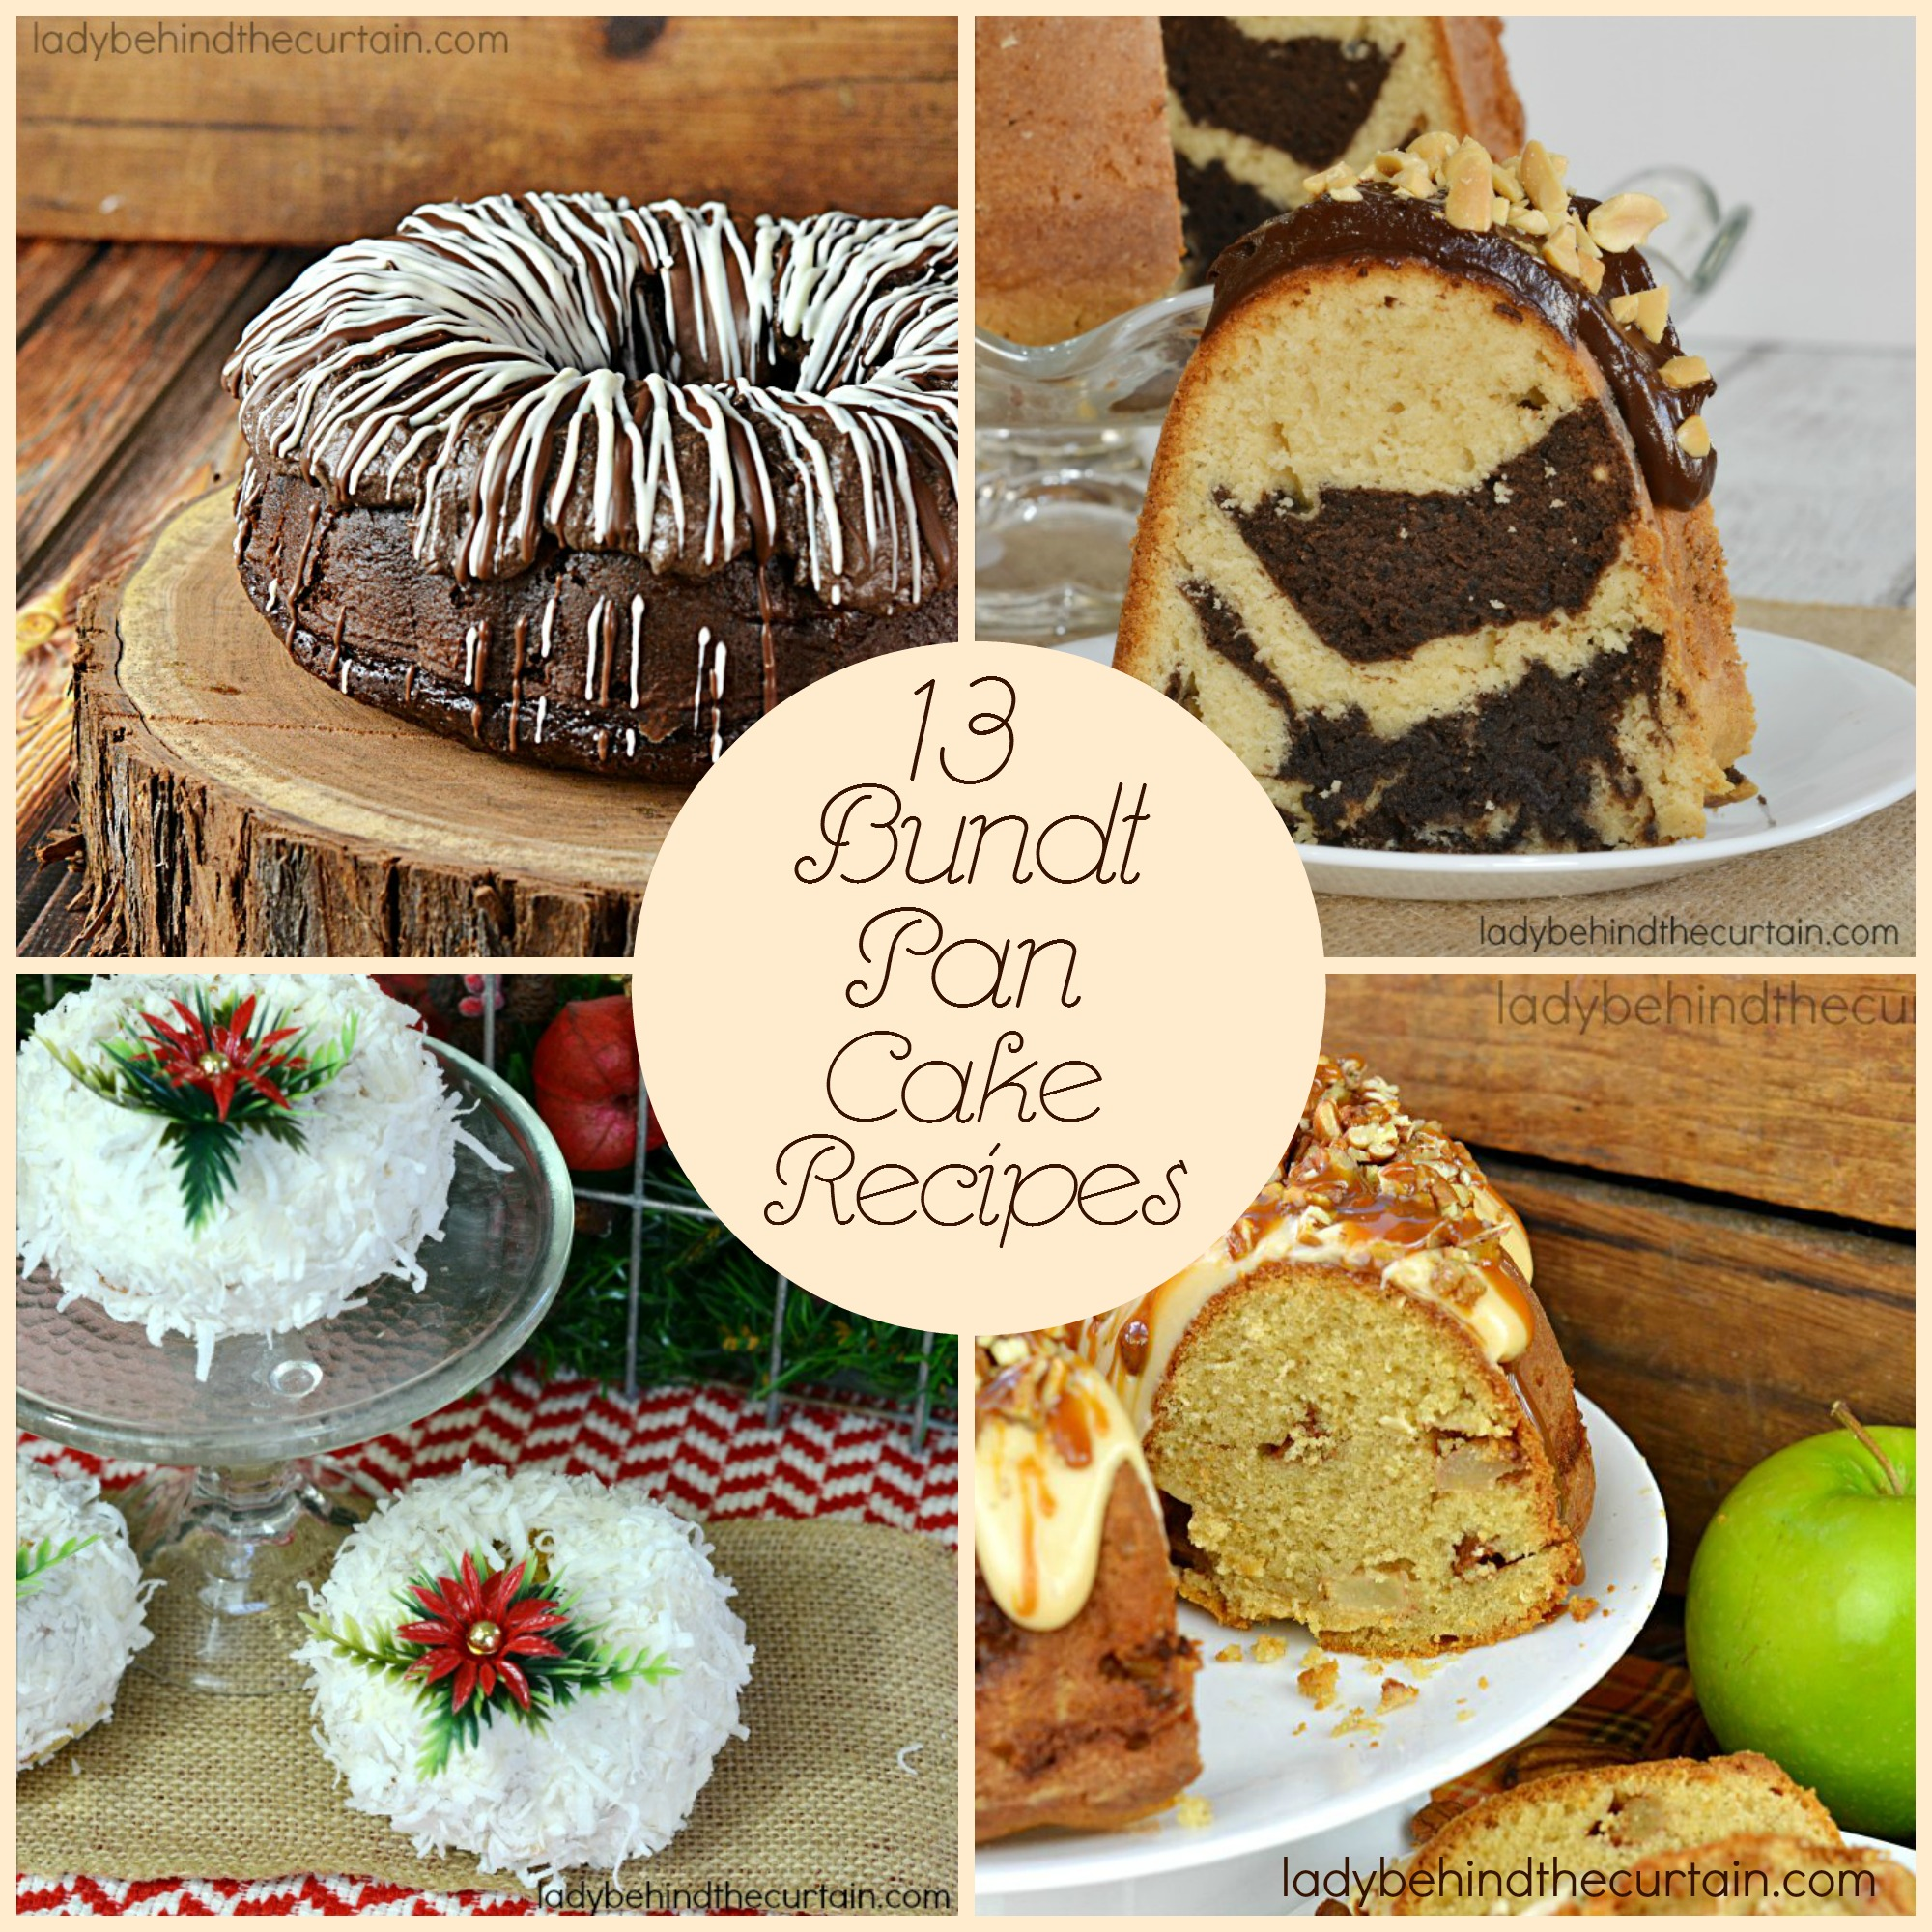 13 Bundt Pan Cake Recipes | From bite size cakes to full size cakes this round up is full of all kinds of cake recipes to help you find the perfect cake for you!